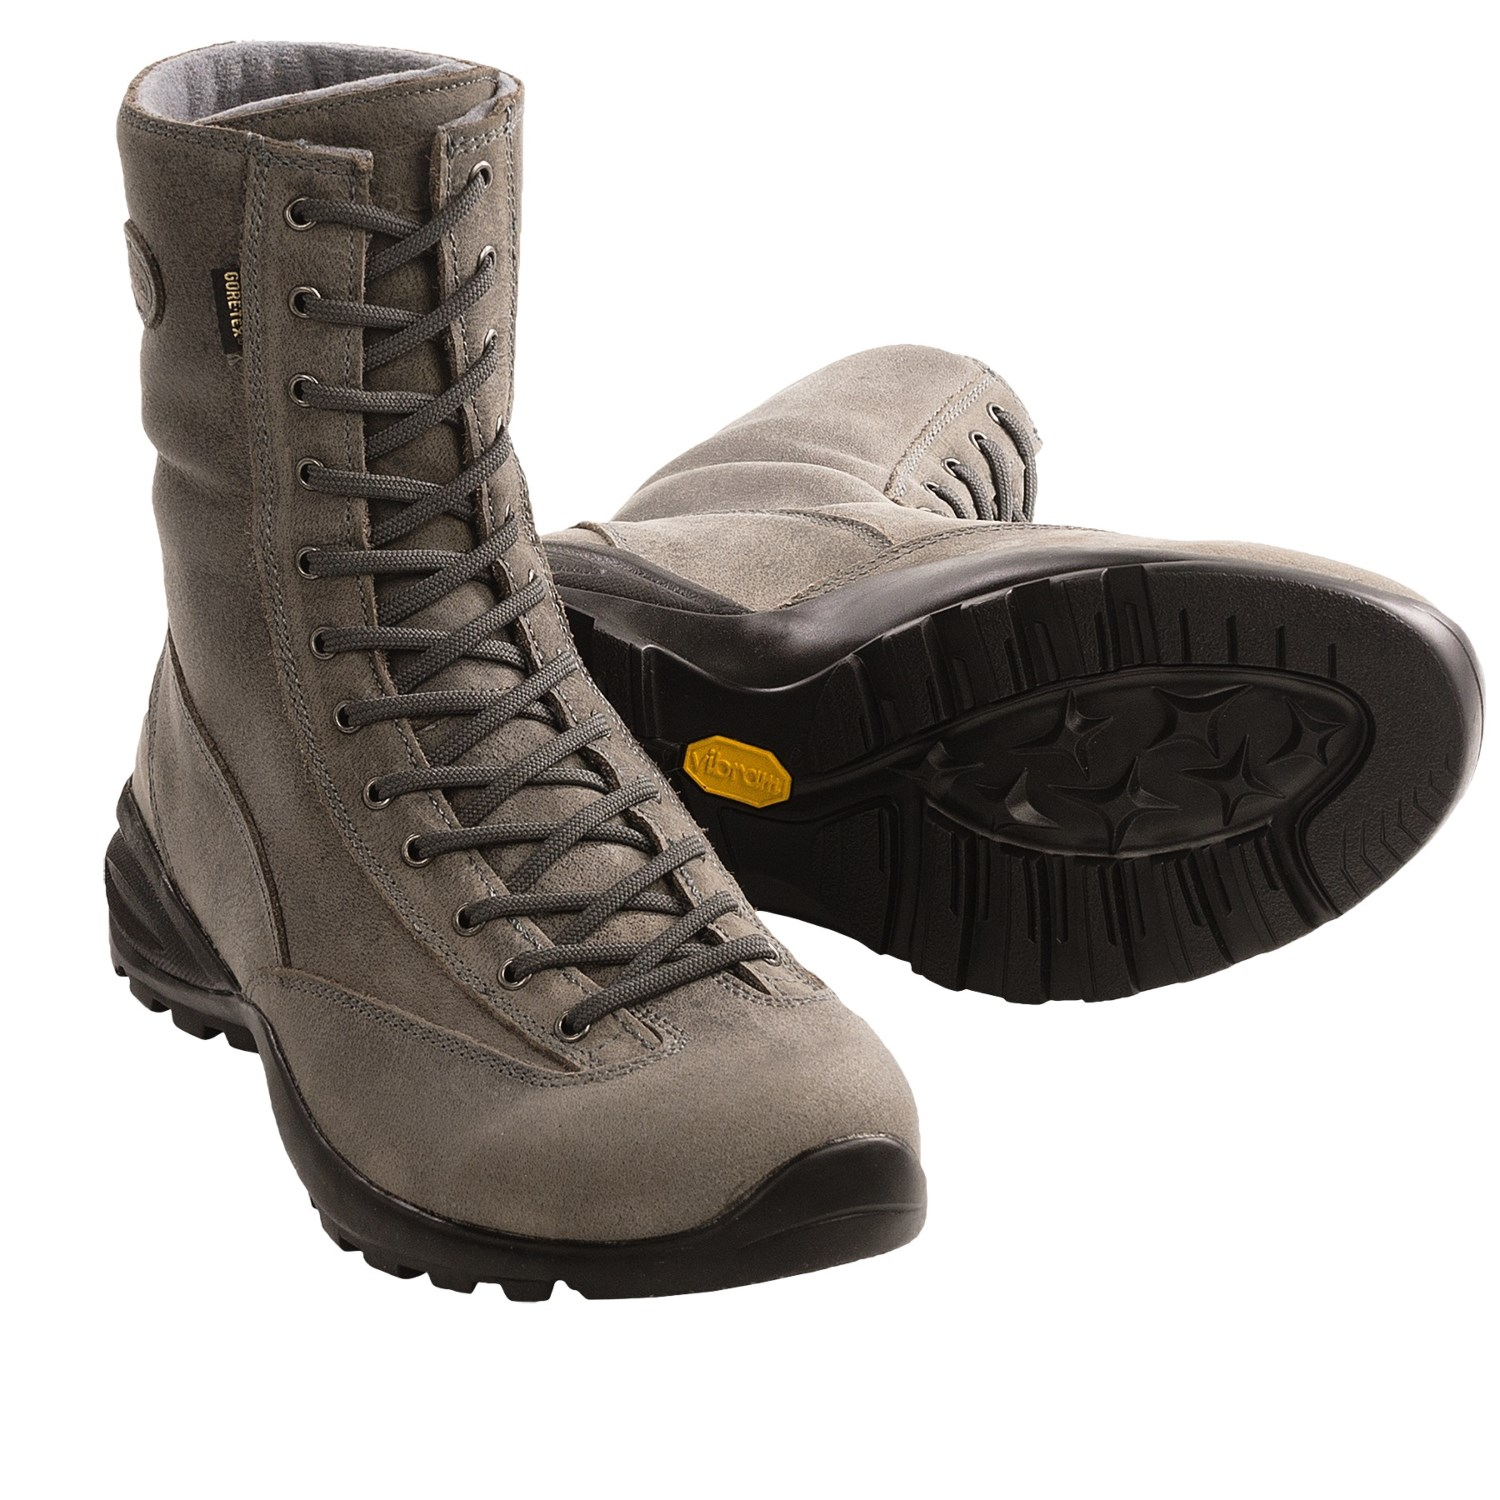 Amazing Asolo Neutron GoreTex Hiking Boots  Waterproof For Women In Dust